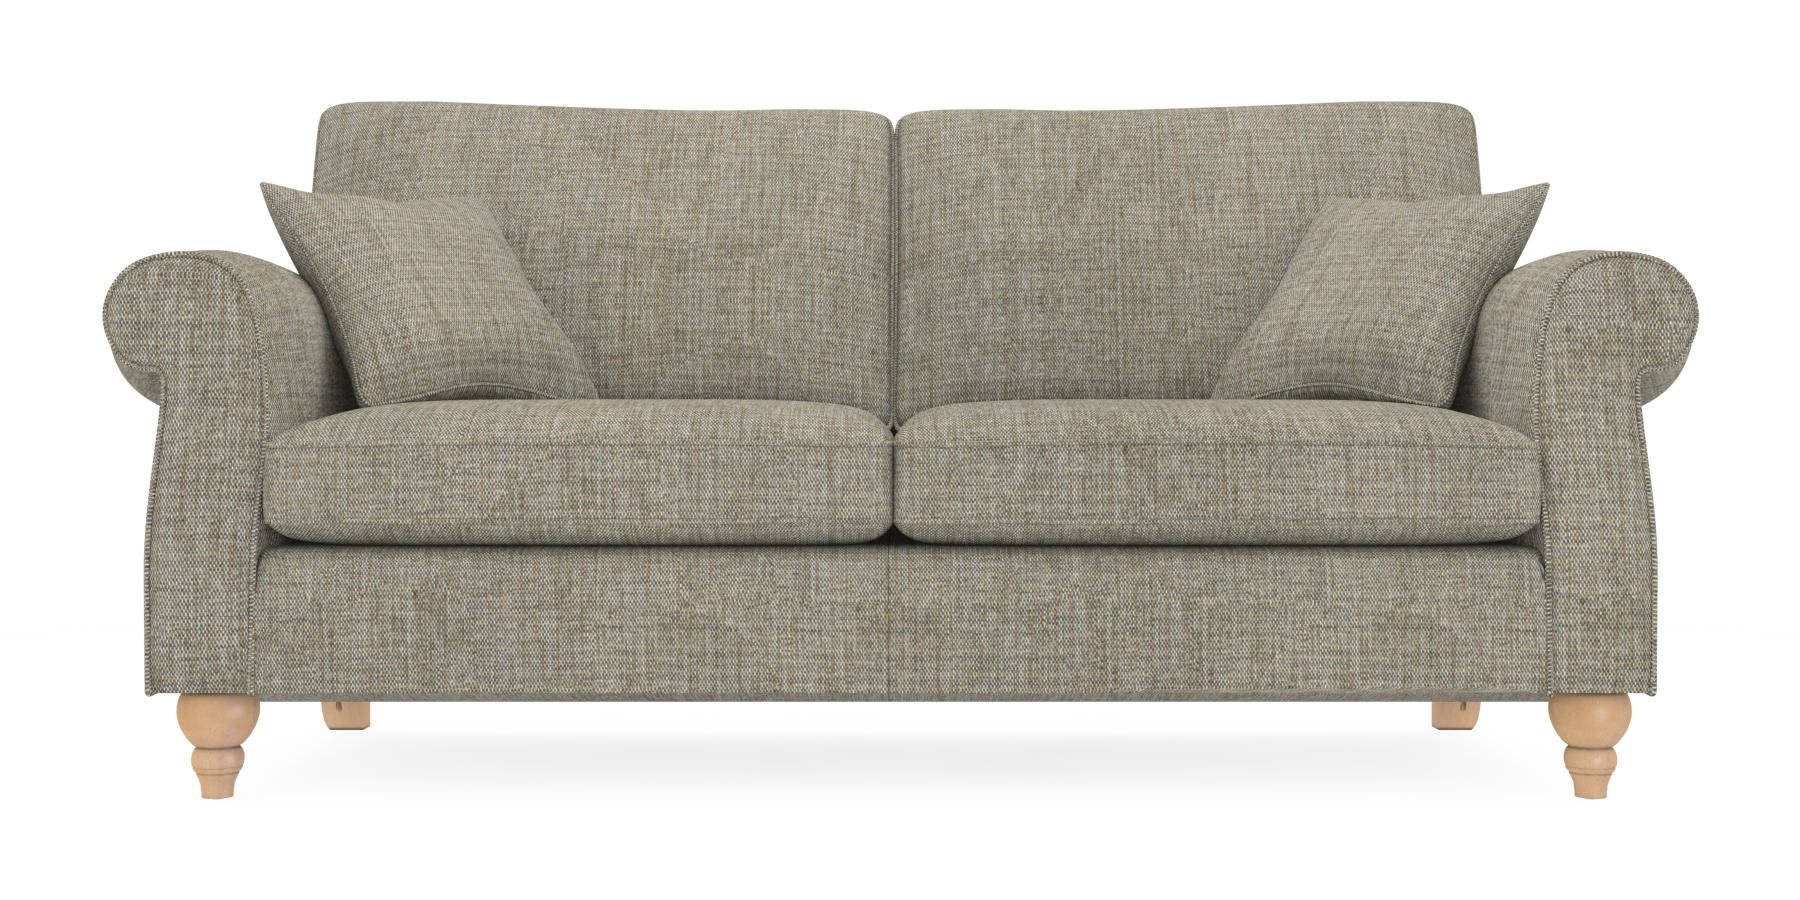 Ashford Large Sofa 3 Seats Textured Weave Mid French Grey Low Turned Light From The Next Uk Online